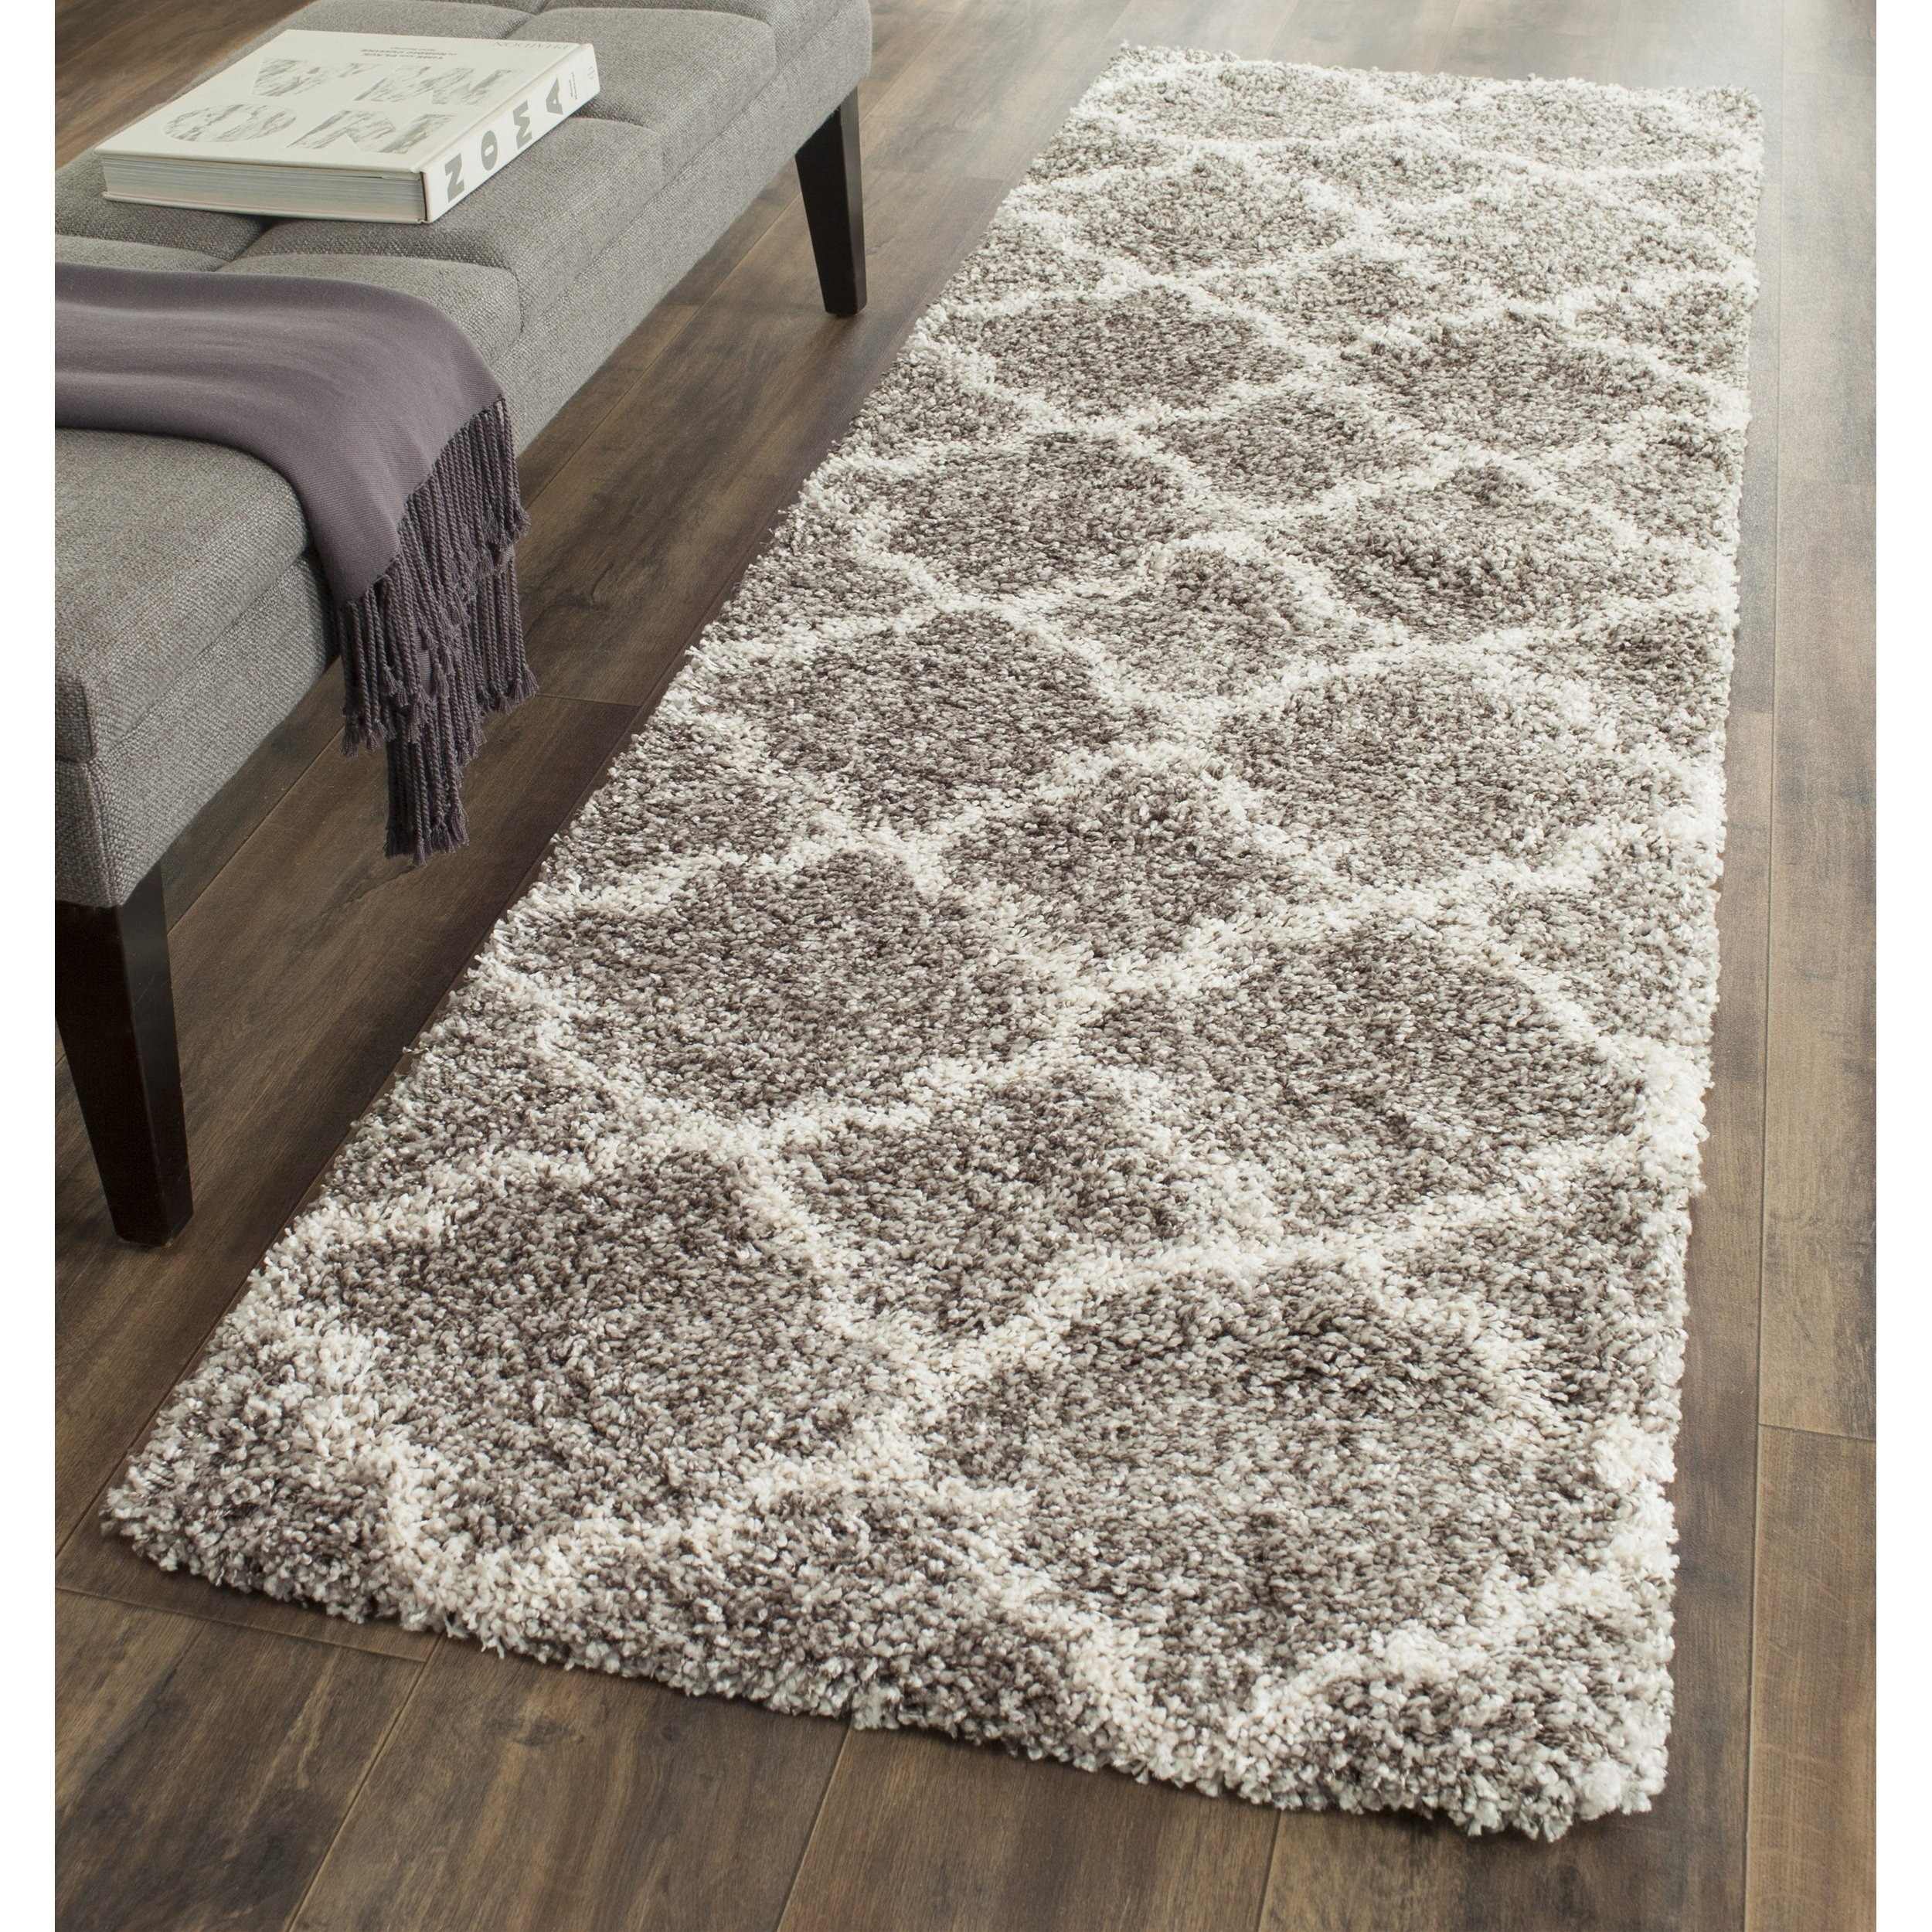 Safavieh Hudson Shag Collection SGH282B Grey and Ivory Moroccan Geometric Quatrefoil Runner (2'3'' x 6')